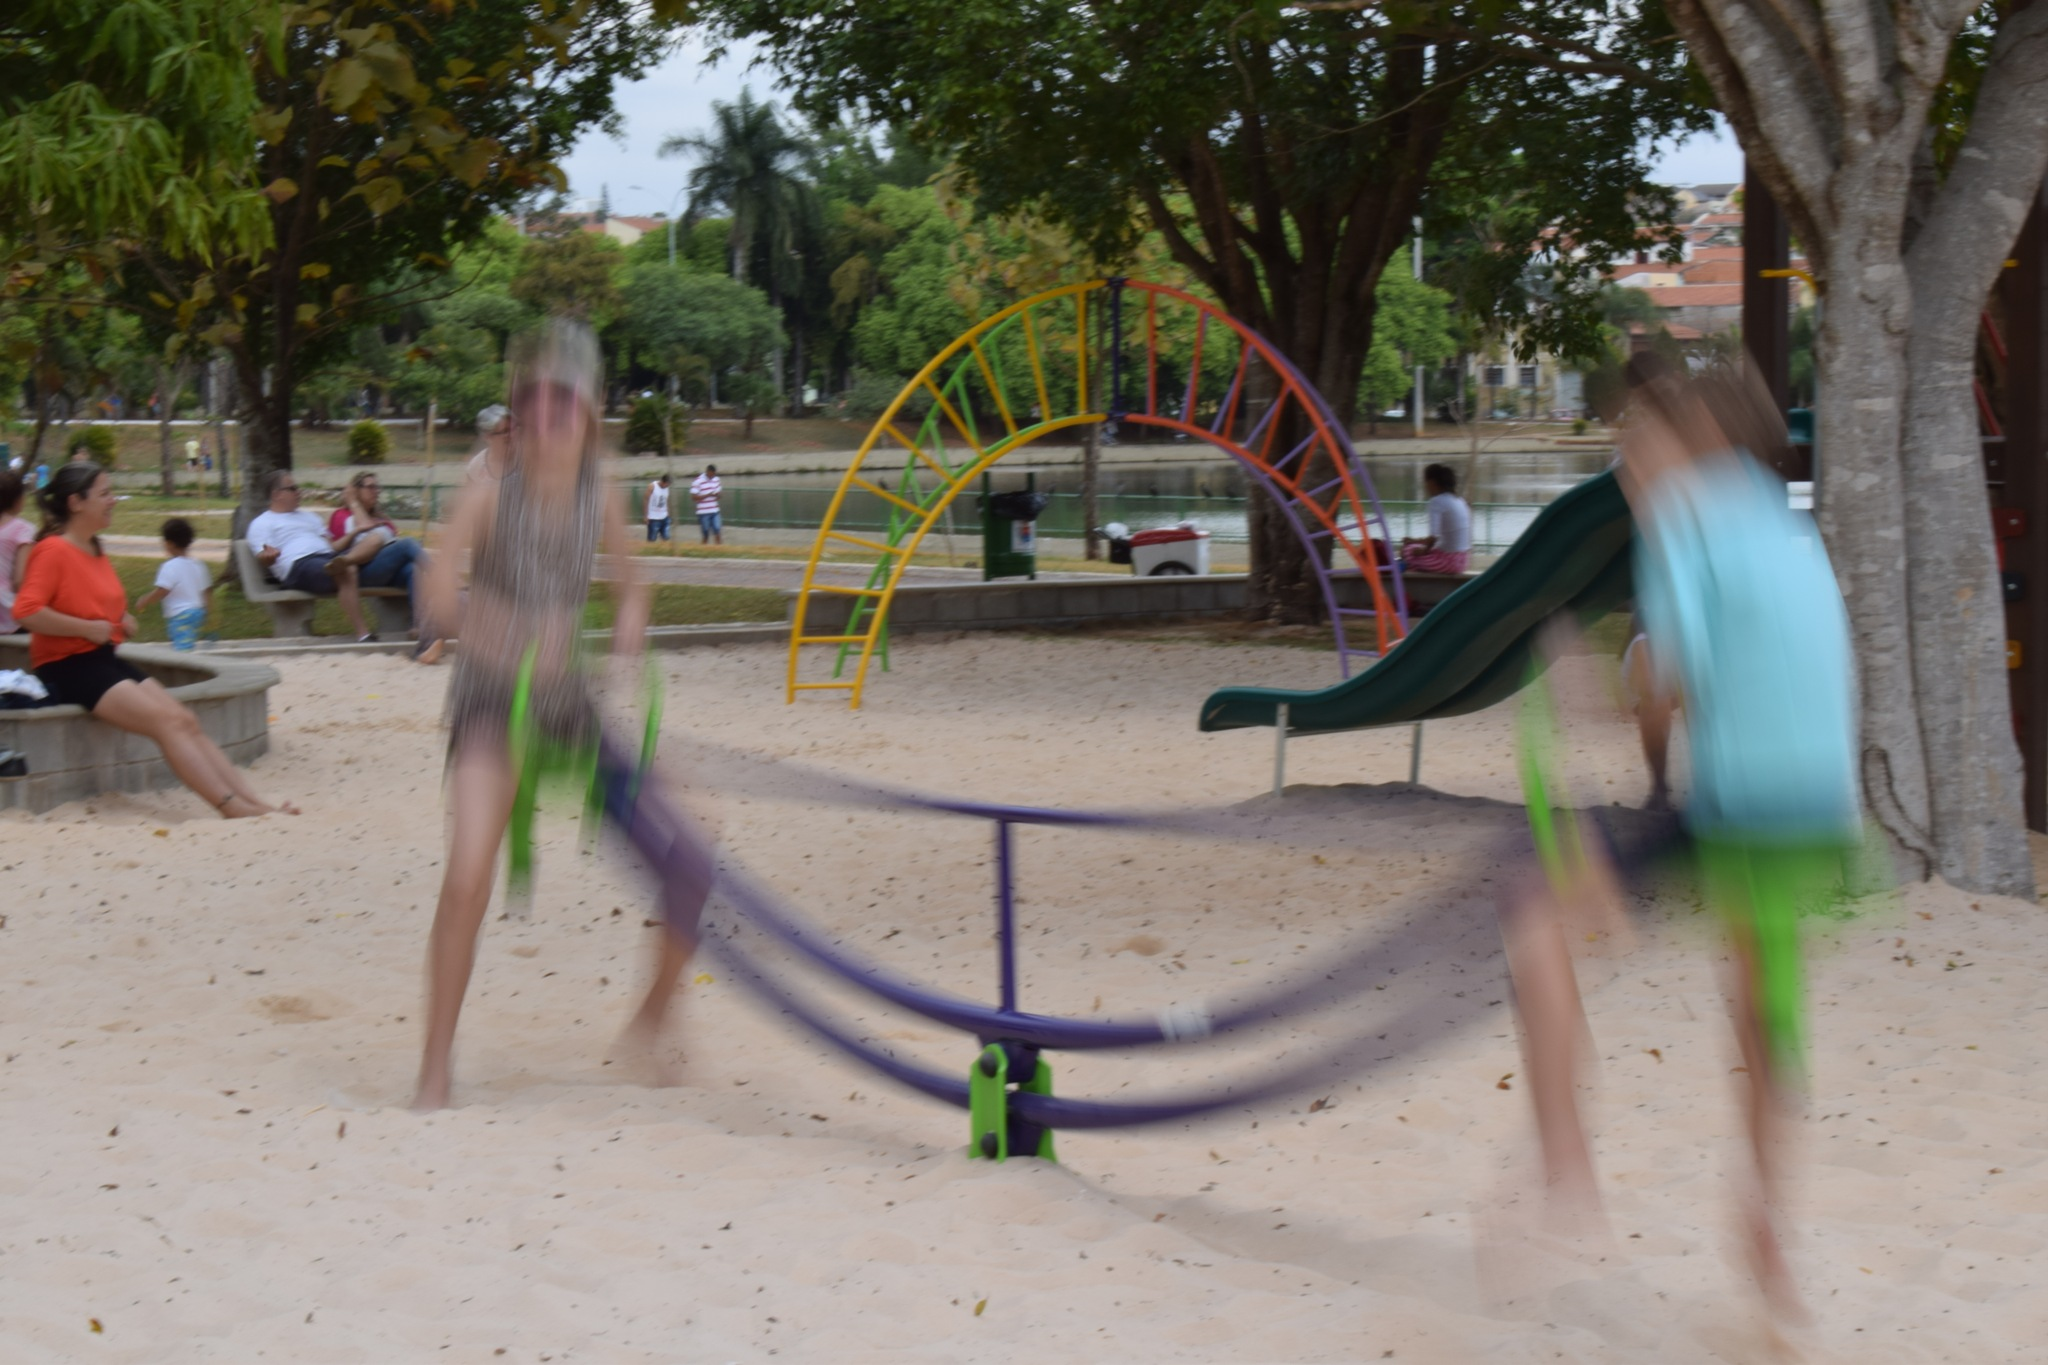 Ghost playing in the playground by Cambraia